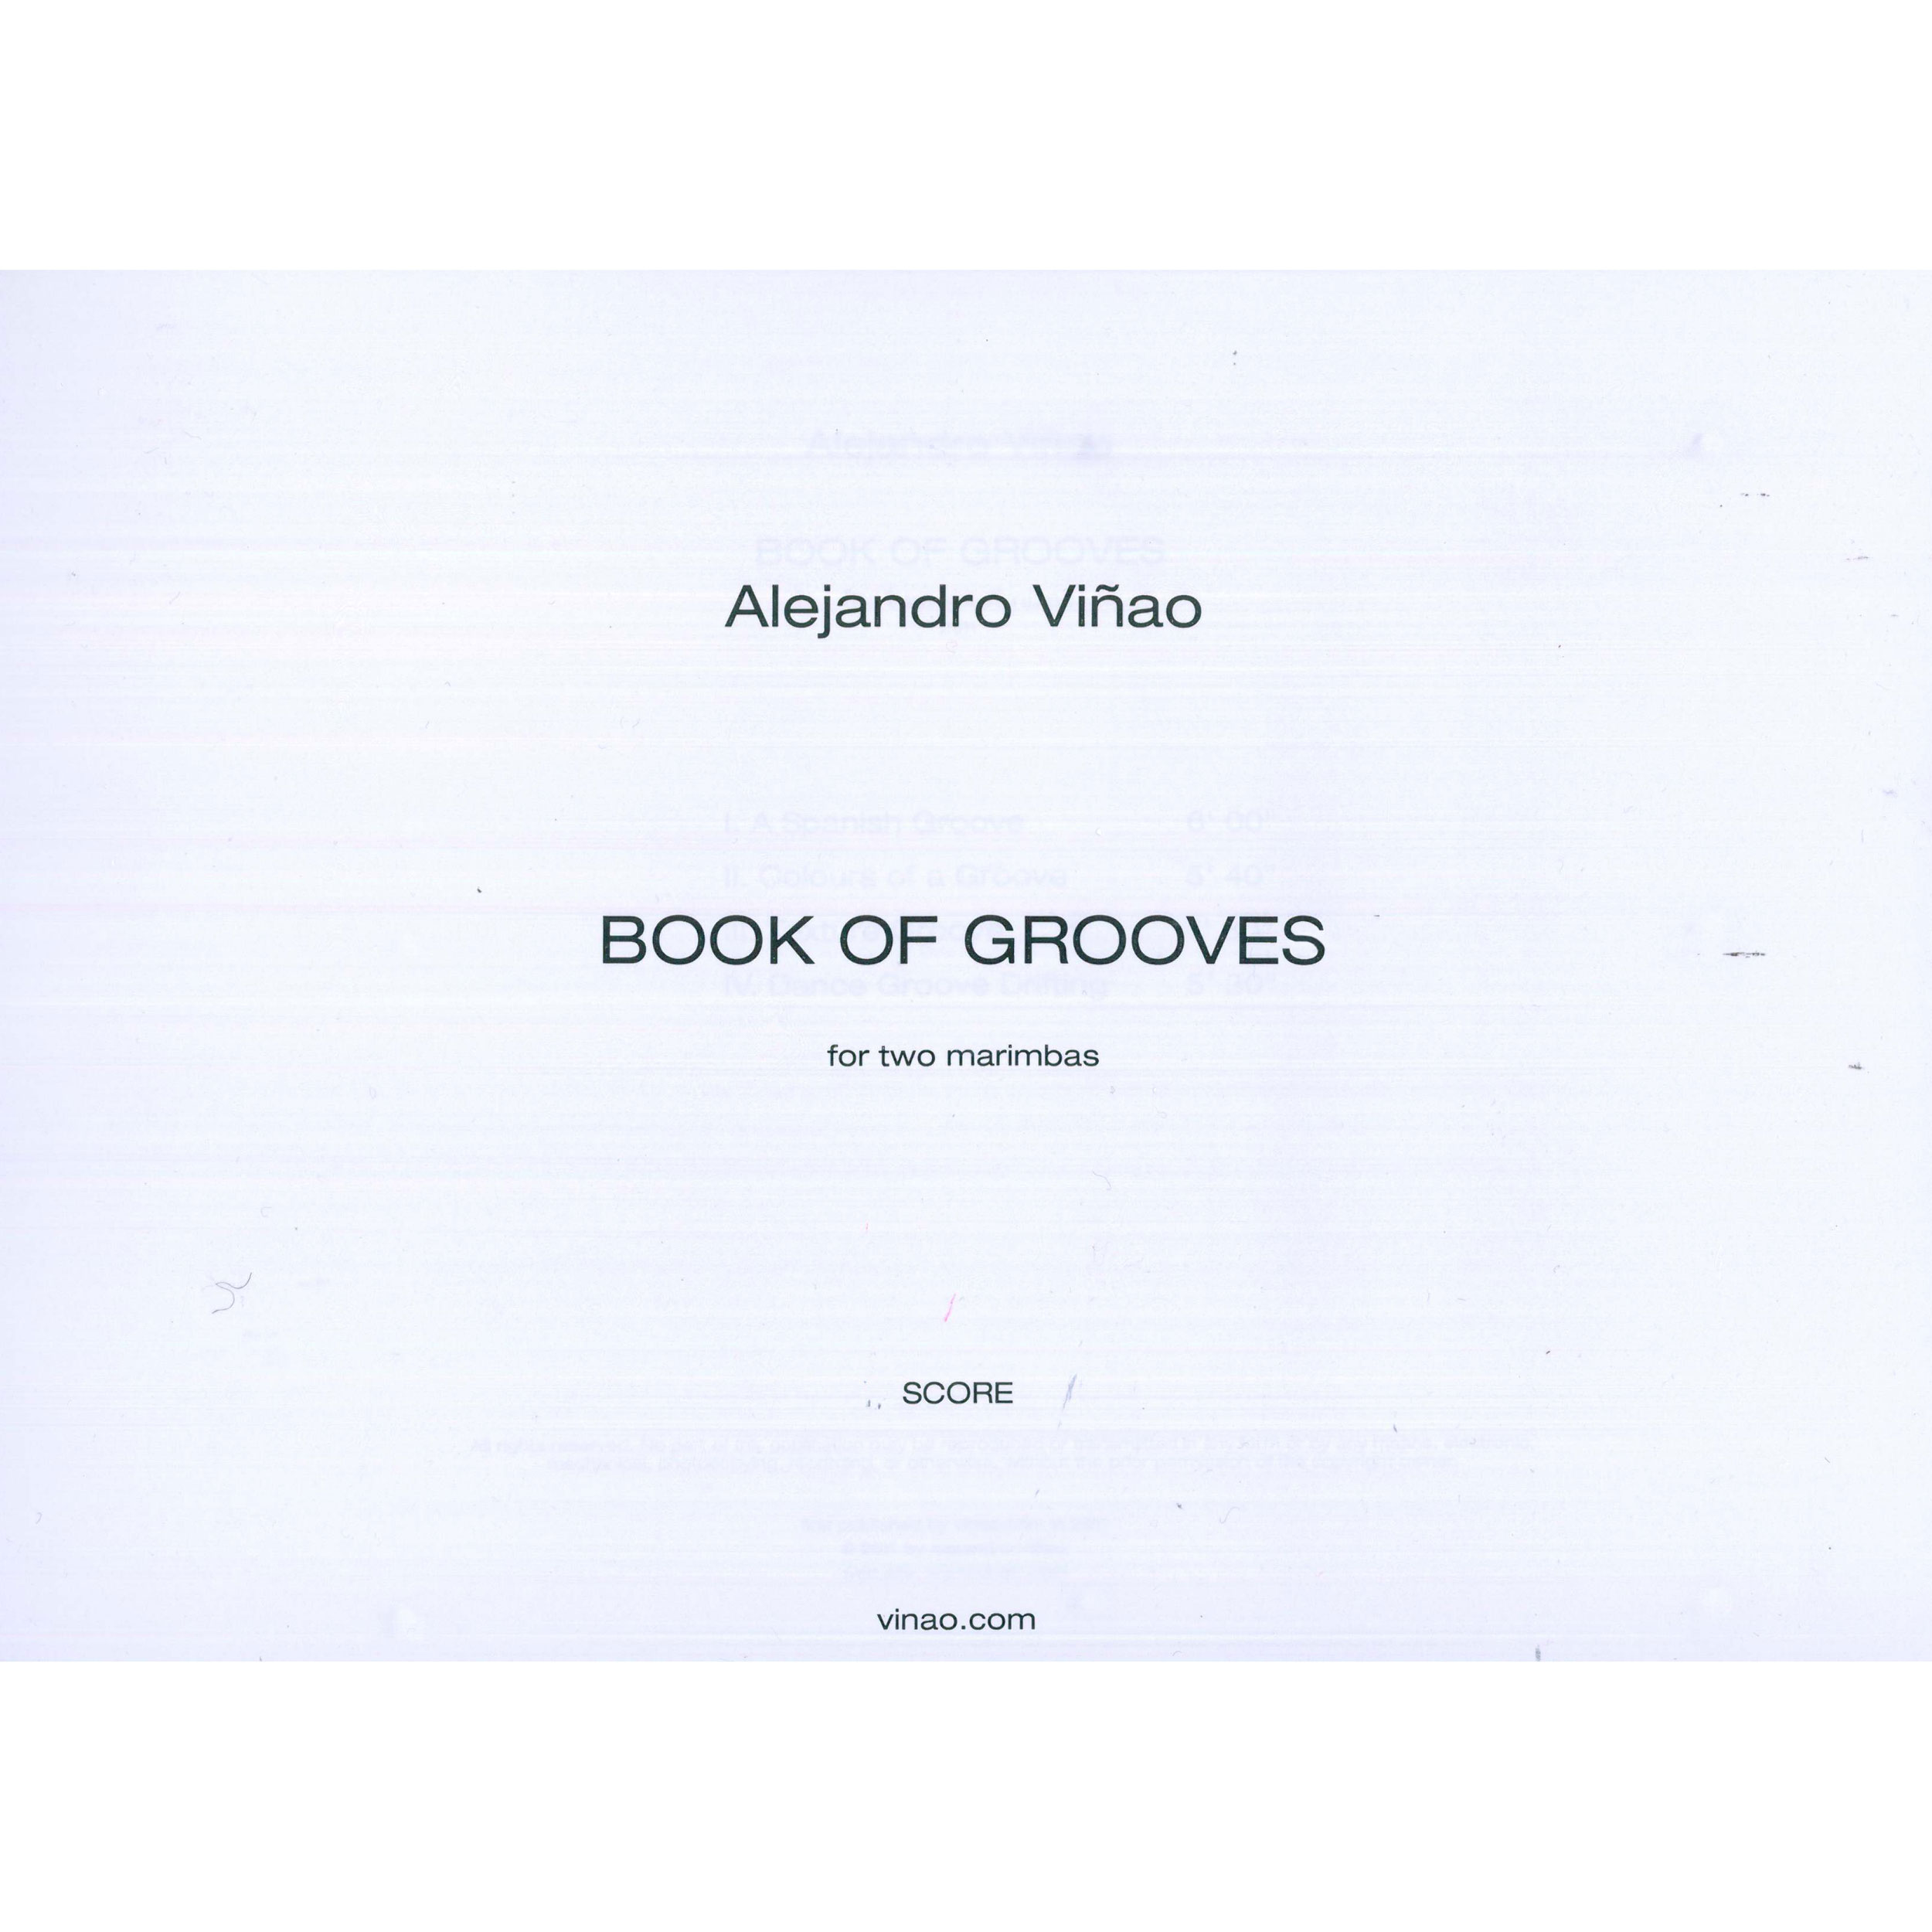 Book of Grooves by Alejandro Vinao (Score)